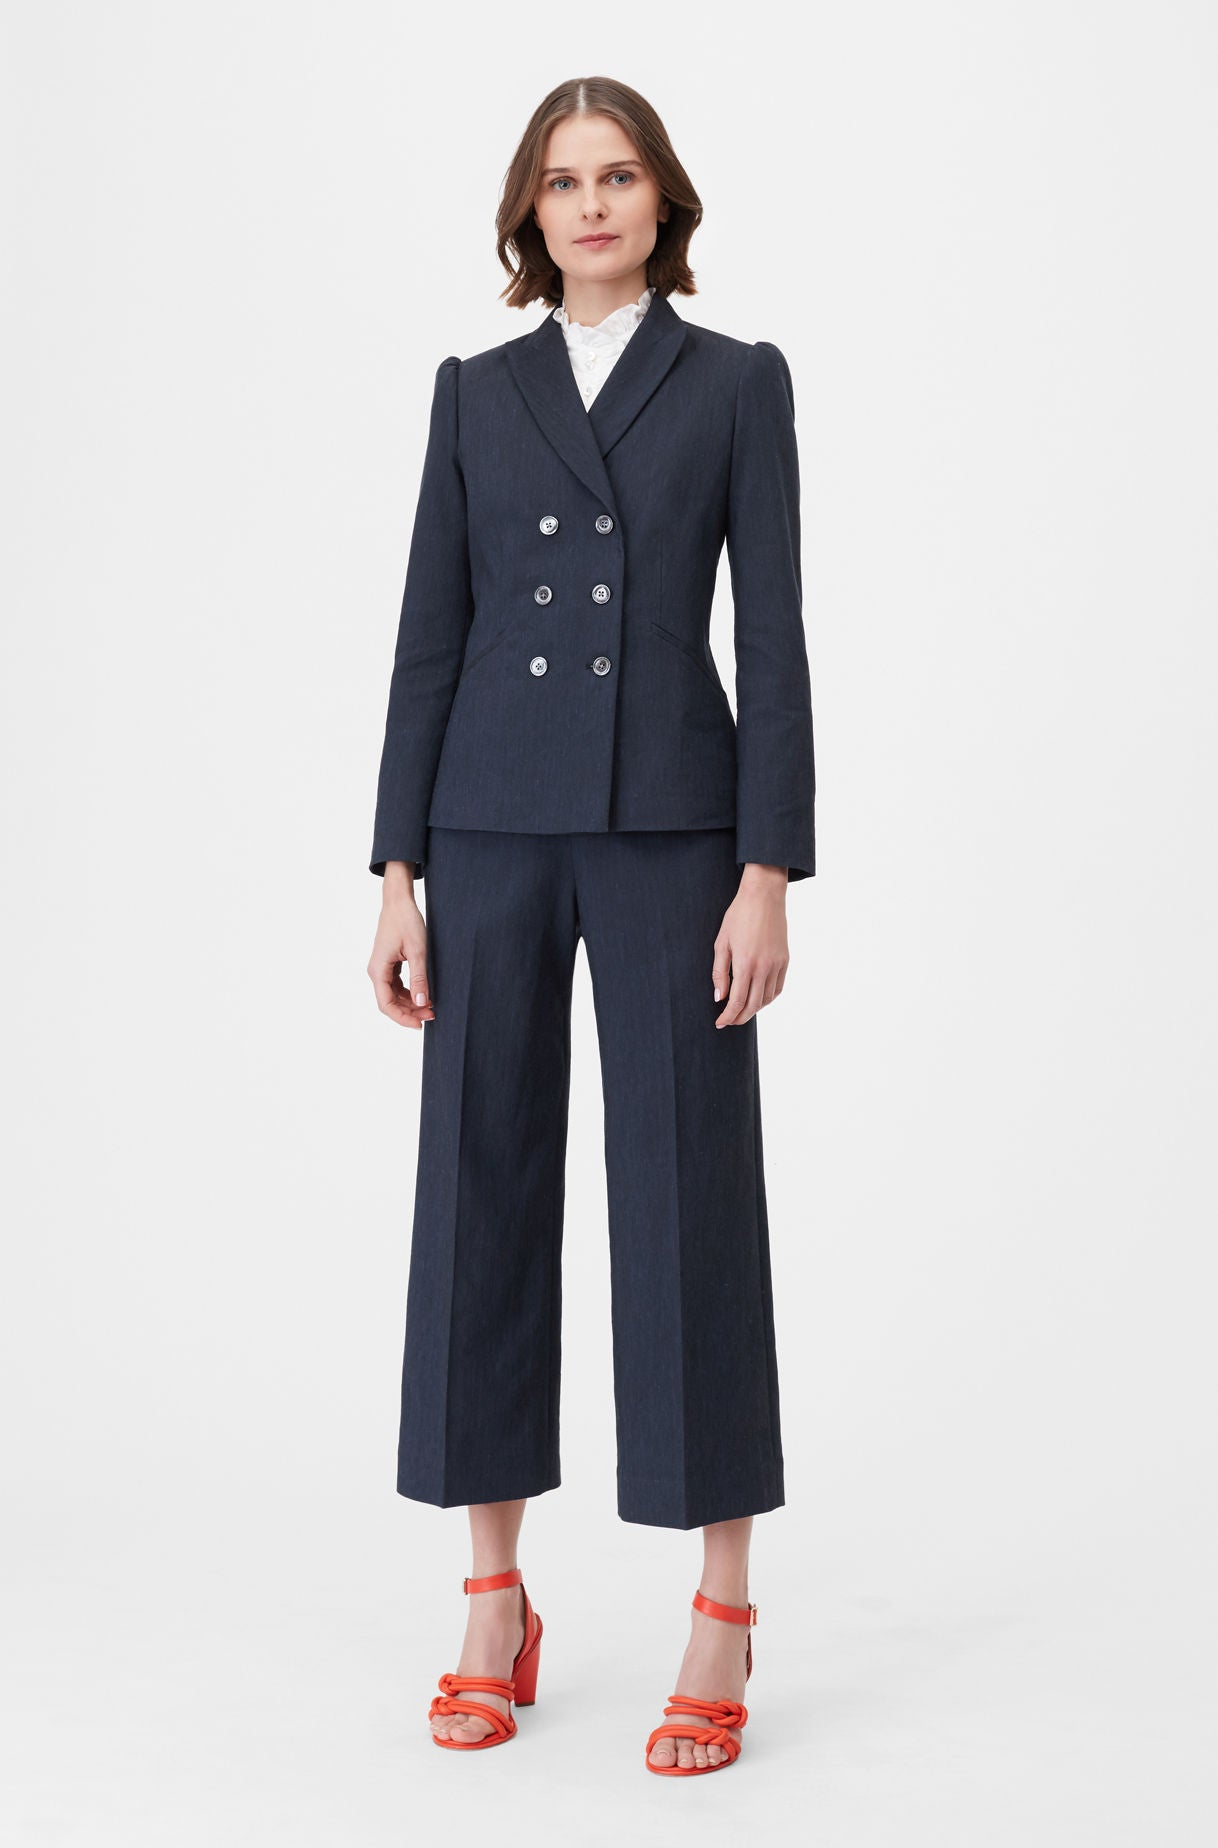 0ba9c3fbe252b Rebecca Taylor | Tailored Stretch Linen Blend Jacket in Dark Navy ...